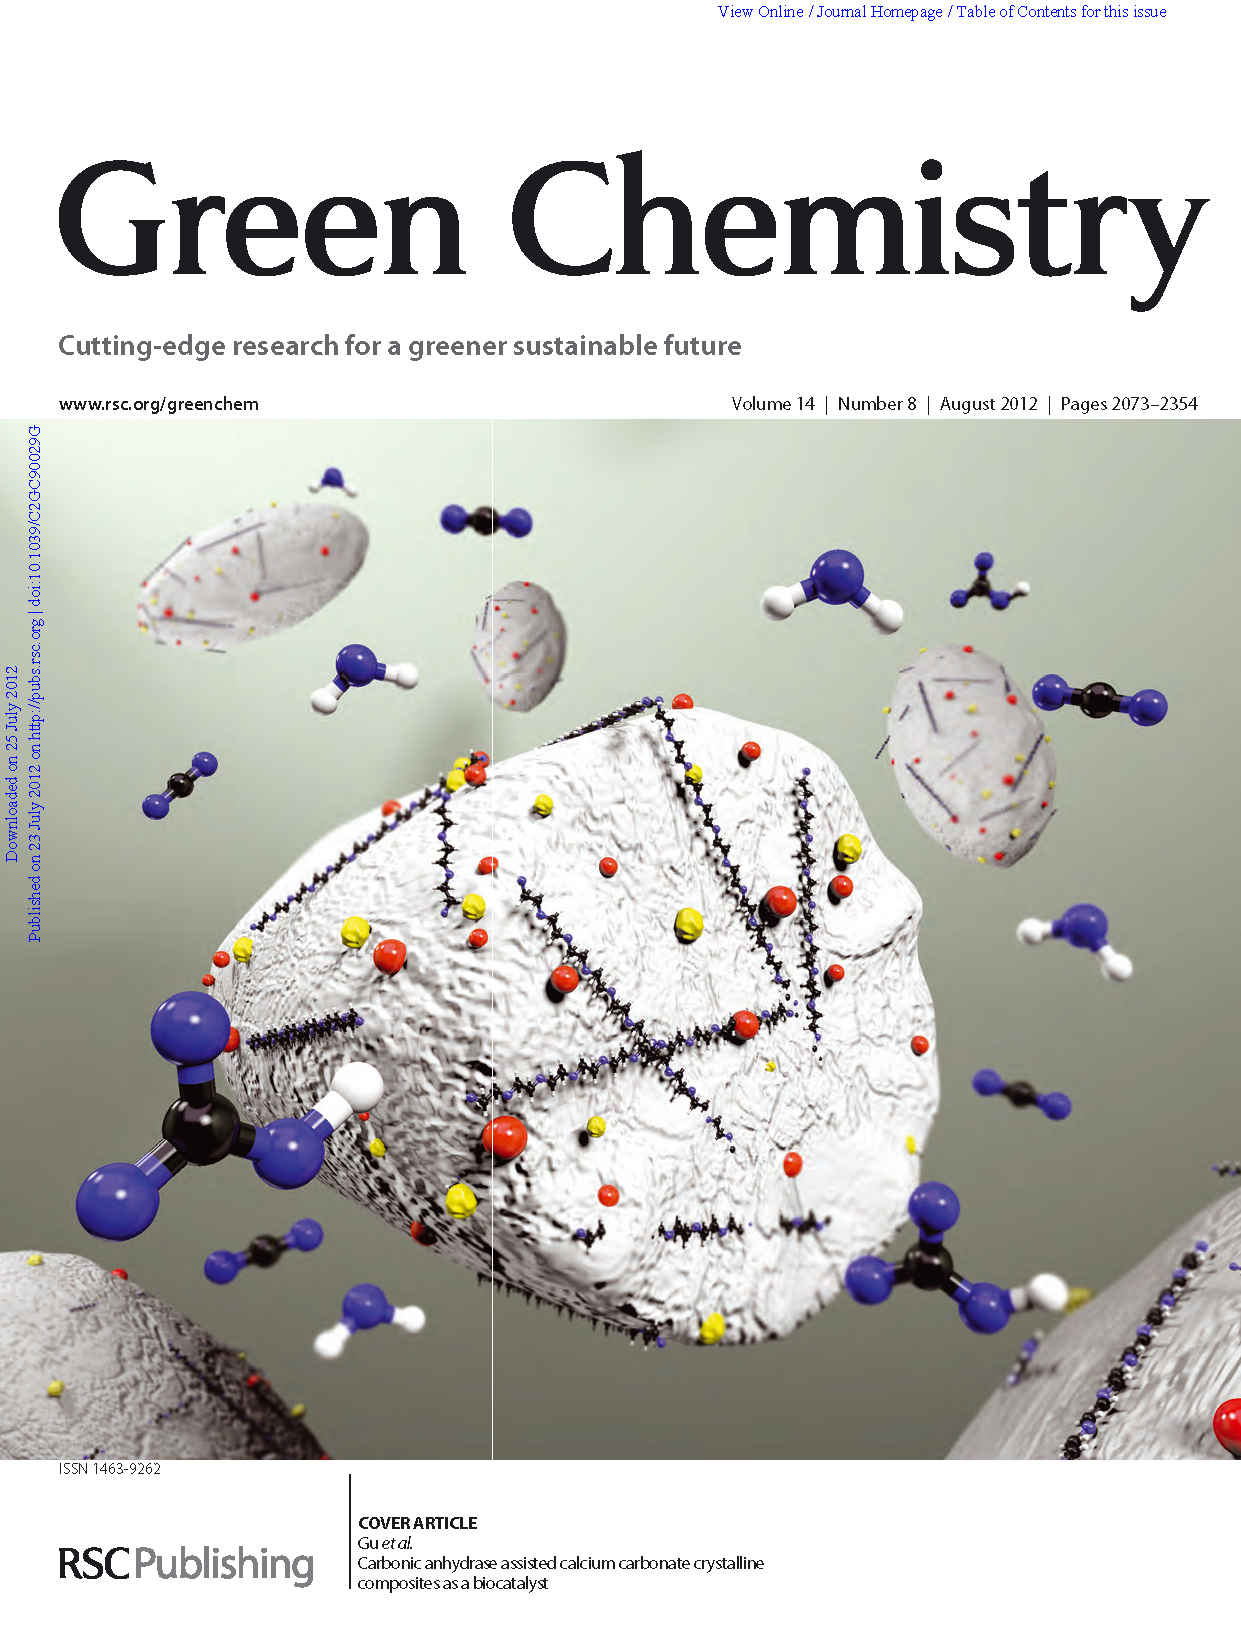 green chemistry research papers The ivory tower goes green green chemistry new title complements other journals that cover green chemistry and sustainability research calls for papers.